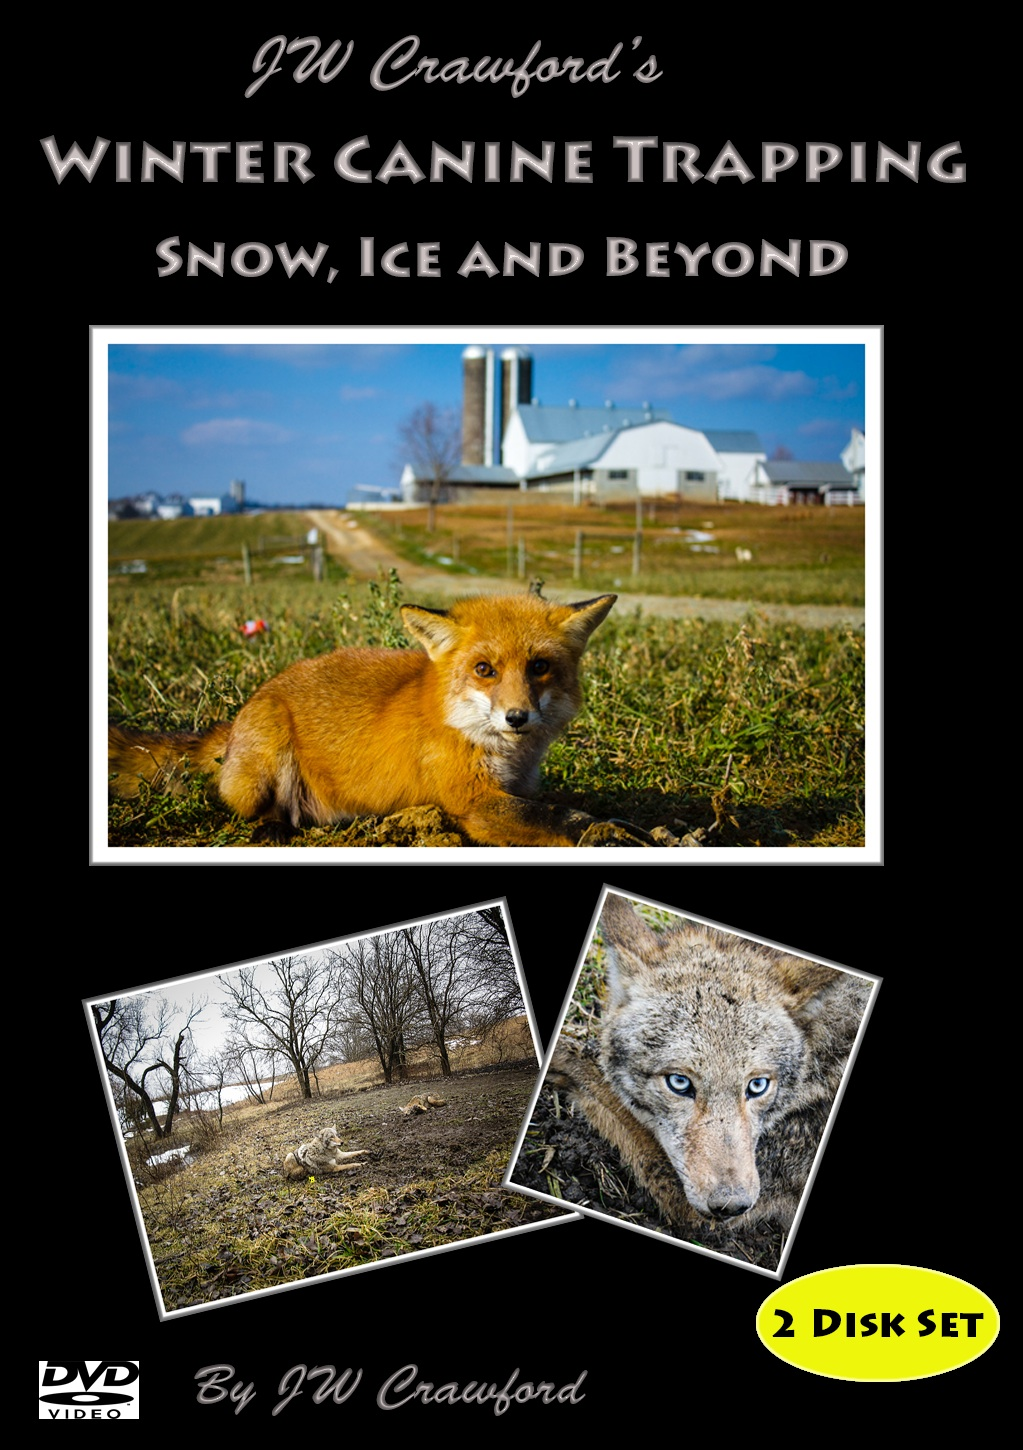 Winter Canine Trapping � Snow, Ice and Beyond - 2 Disc Set DVD wcanine13m